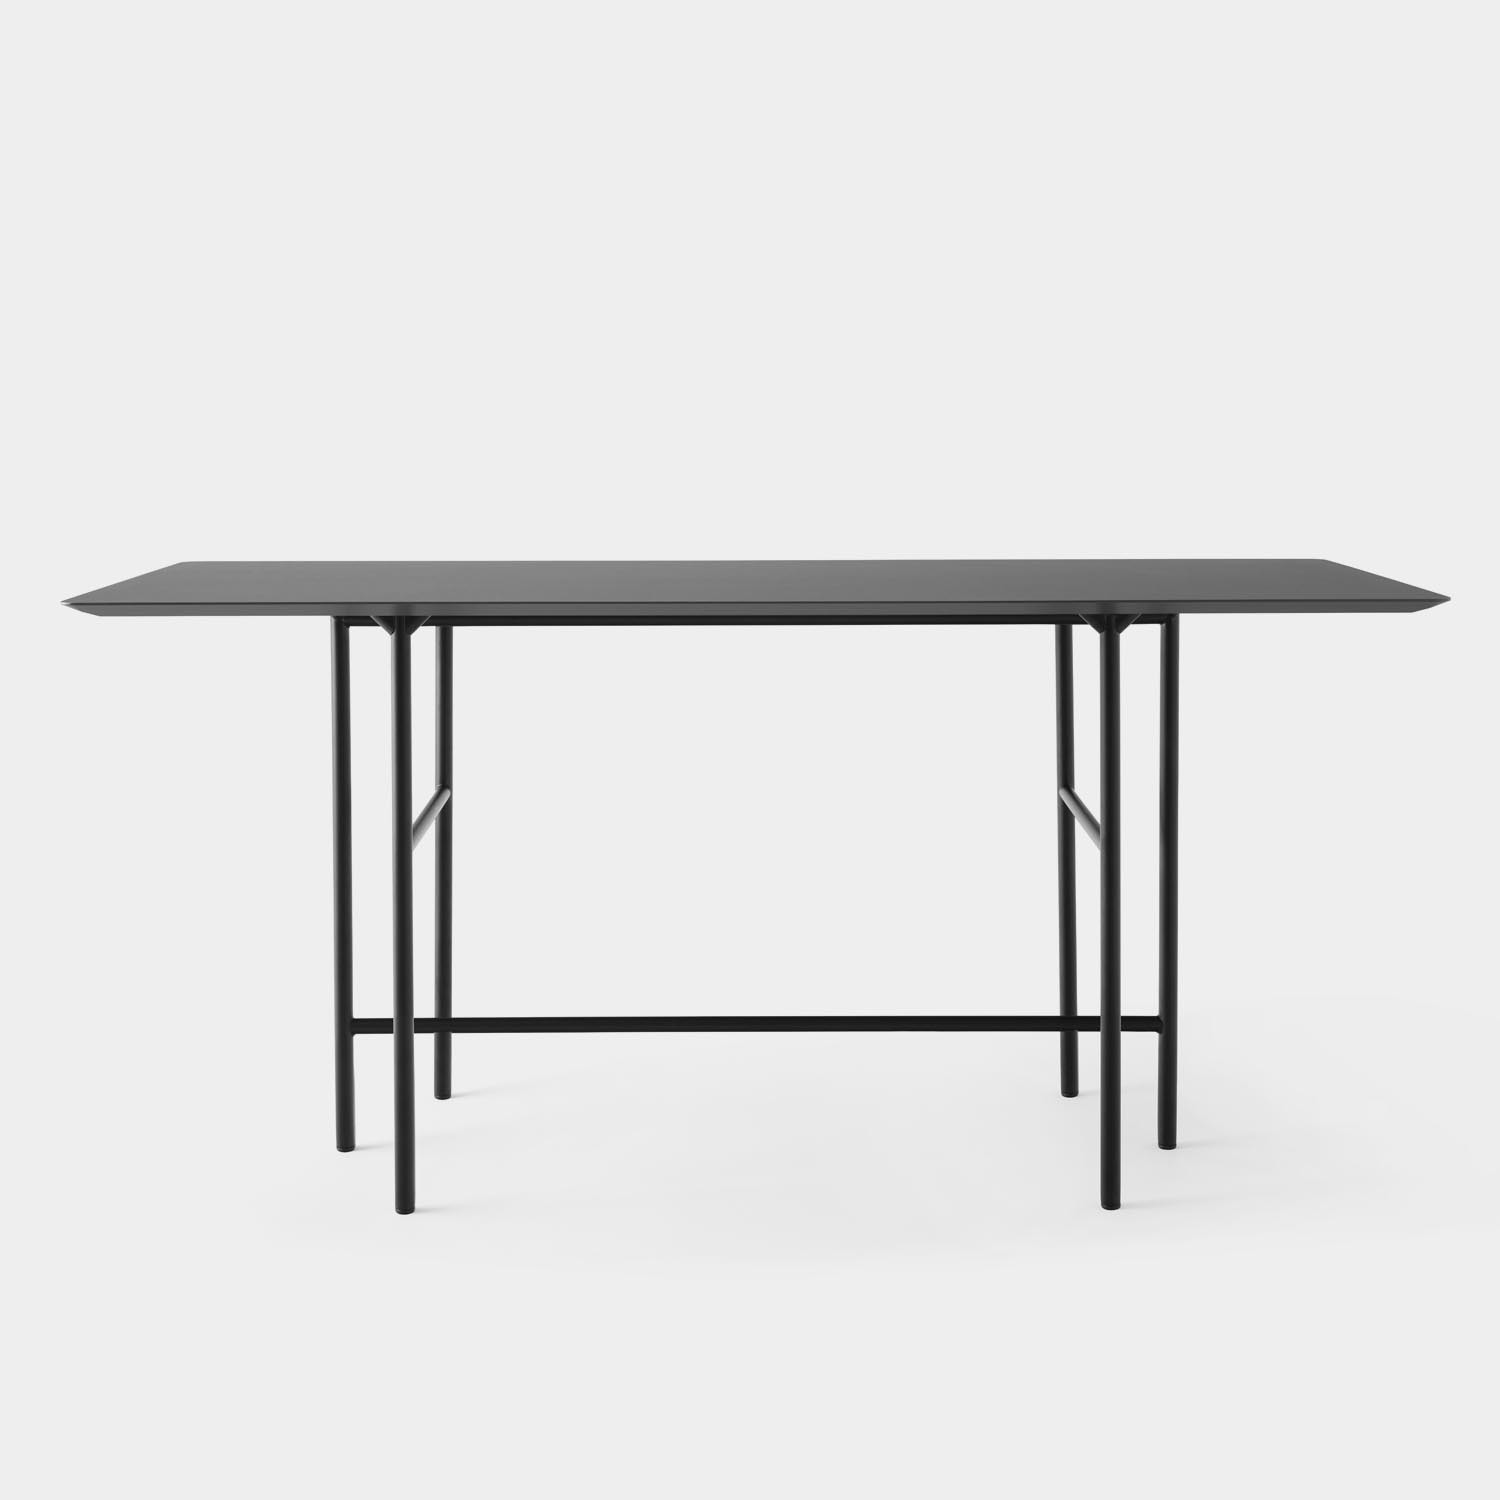 Snaregade Counter Table, Linoleum Top, Black Base